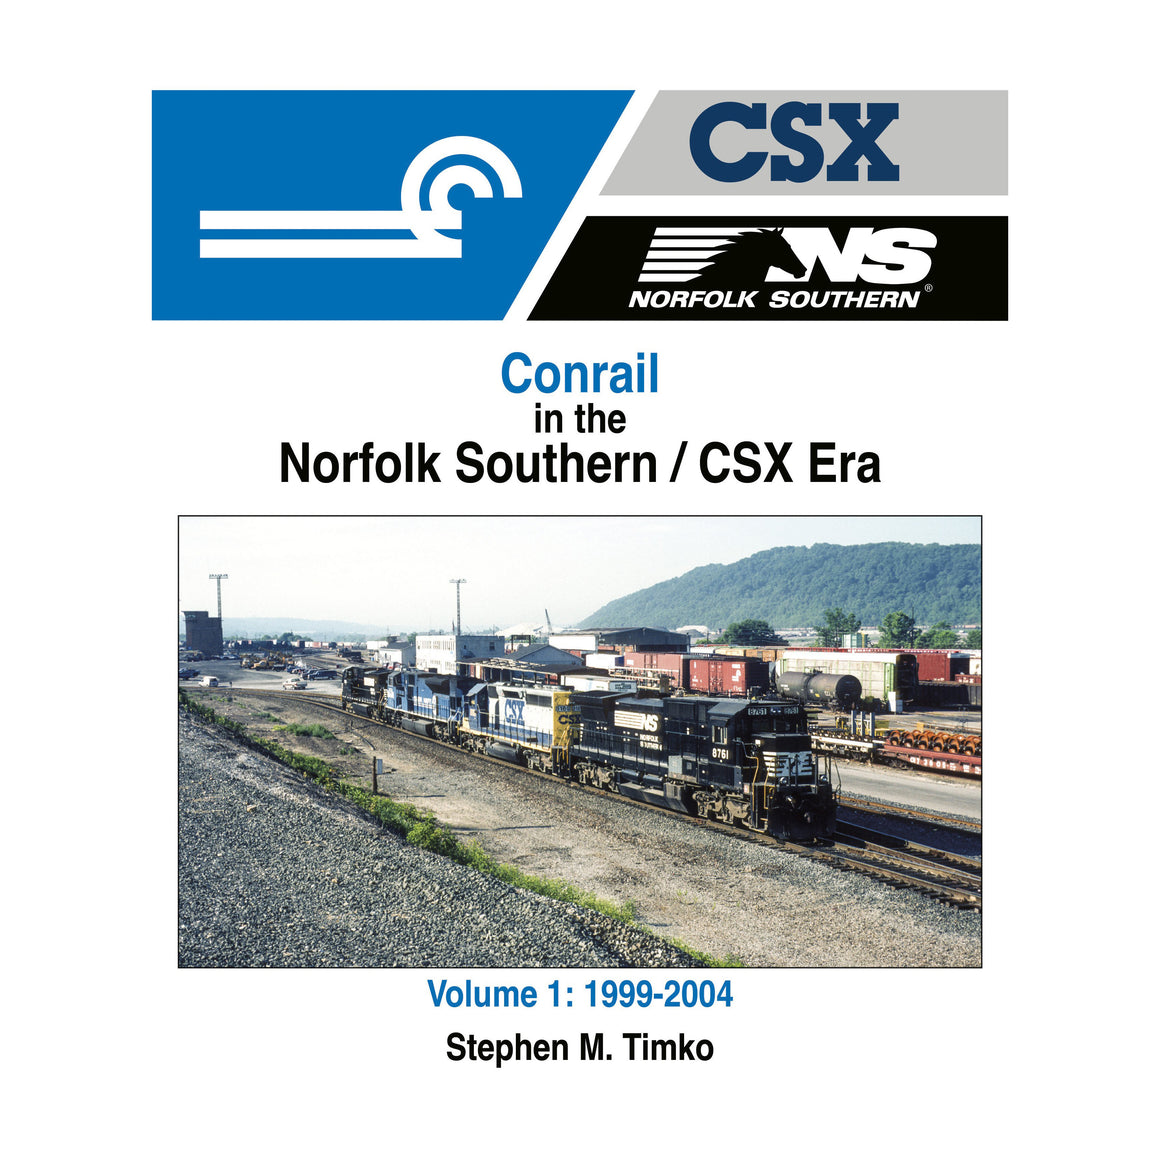 Books: Conrail in the Norfolk Southern / CSX Era Volume 1: 1999-2004